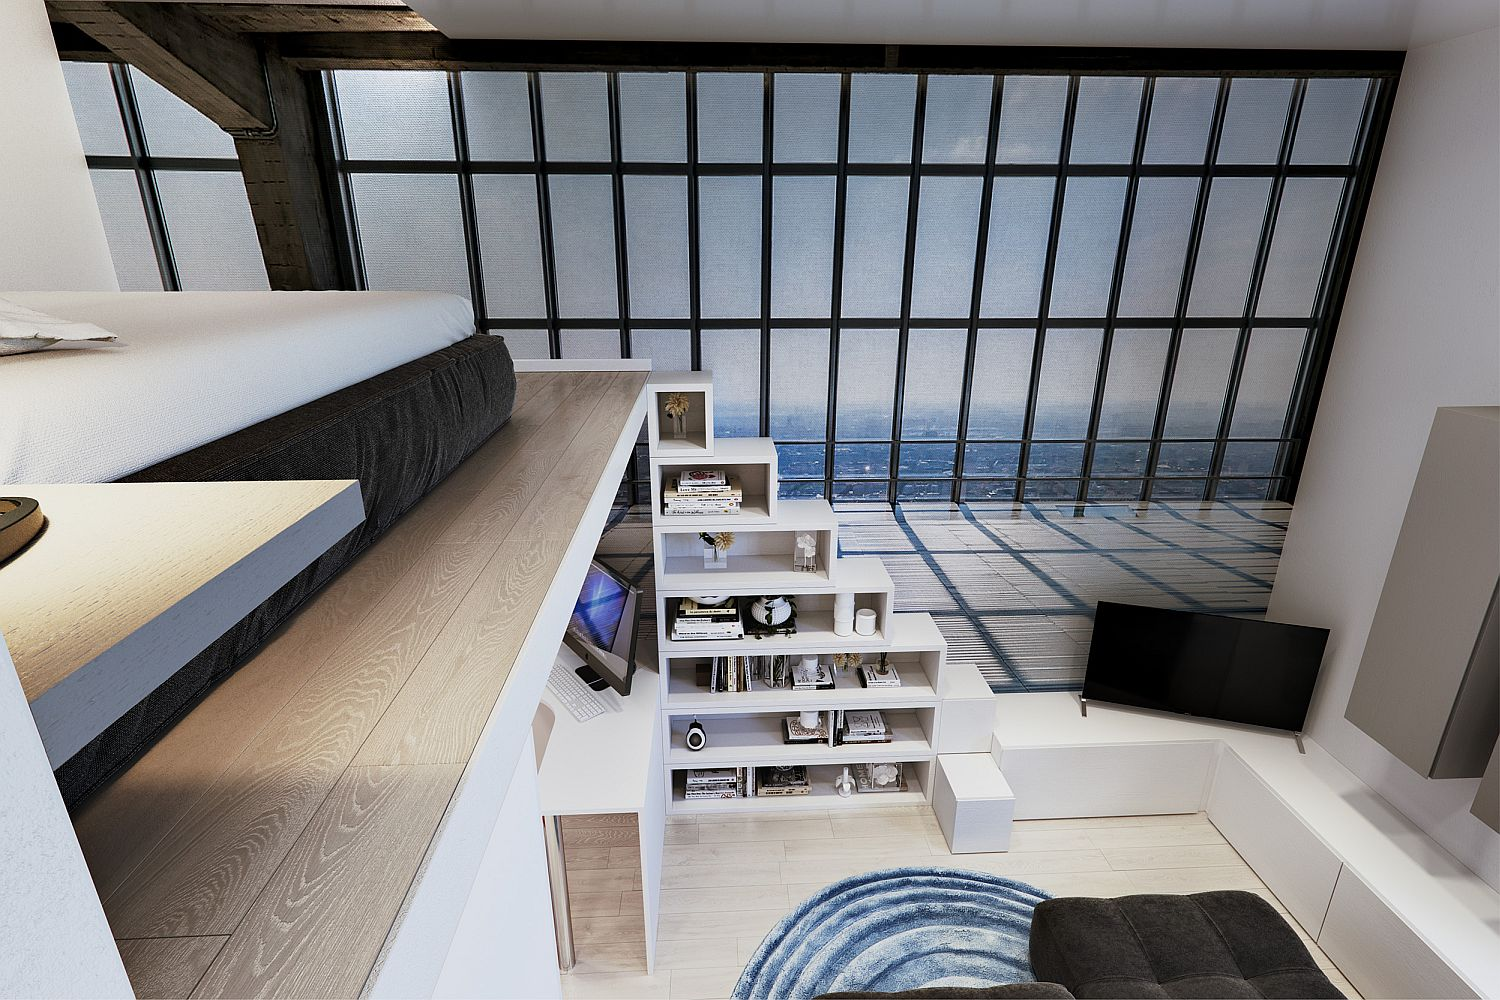 Staircase leading to the lof bedroom doubles as shelving unit